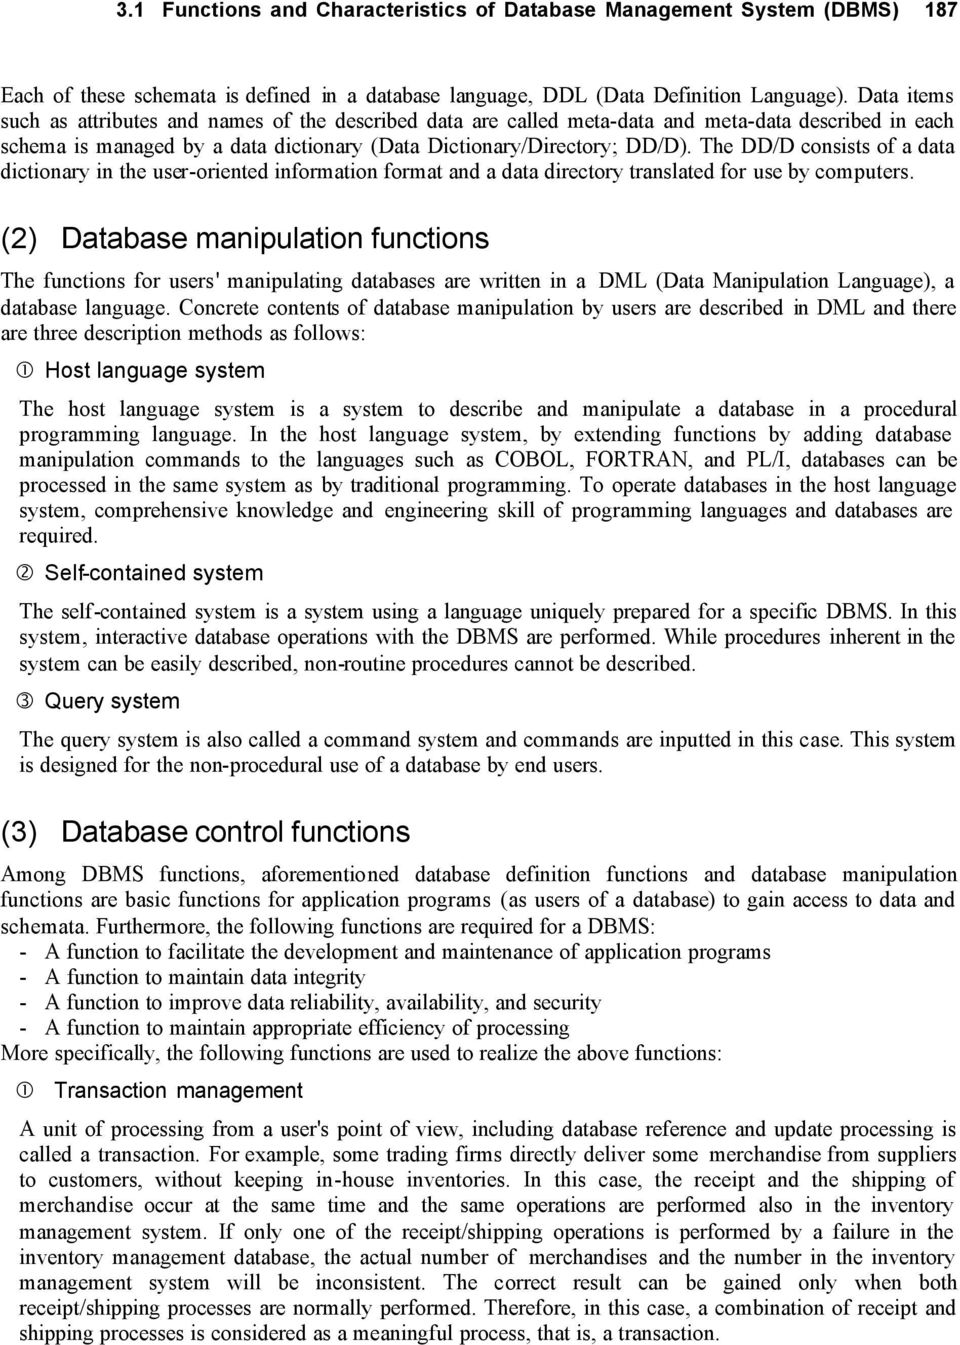 The DD/D consists of a data dictionary in the user-oriented information format and a data directory translated for use by computers.